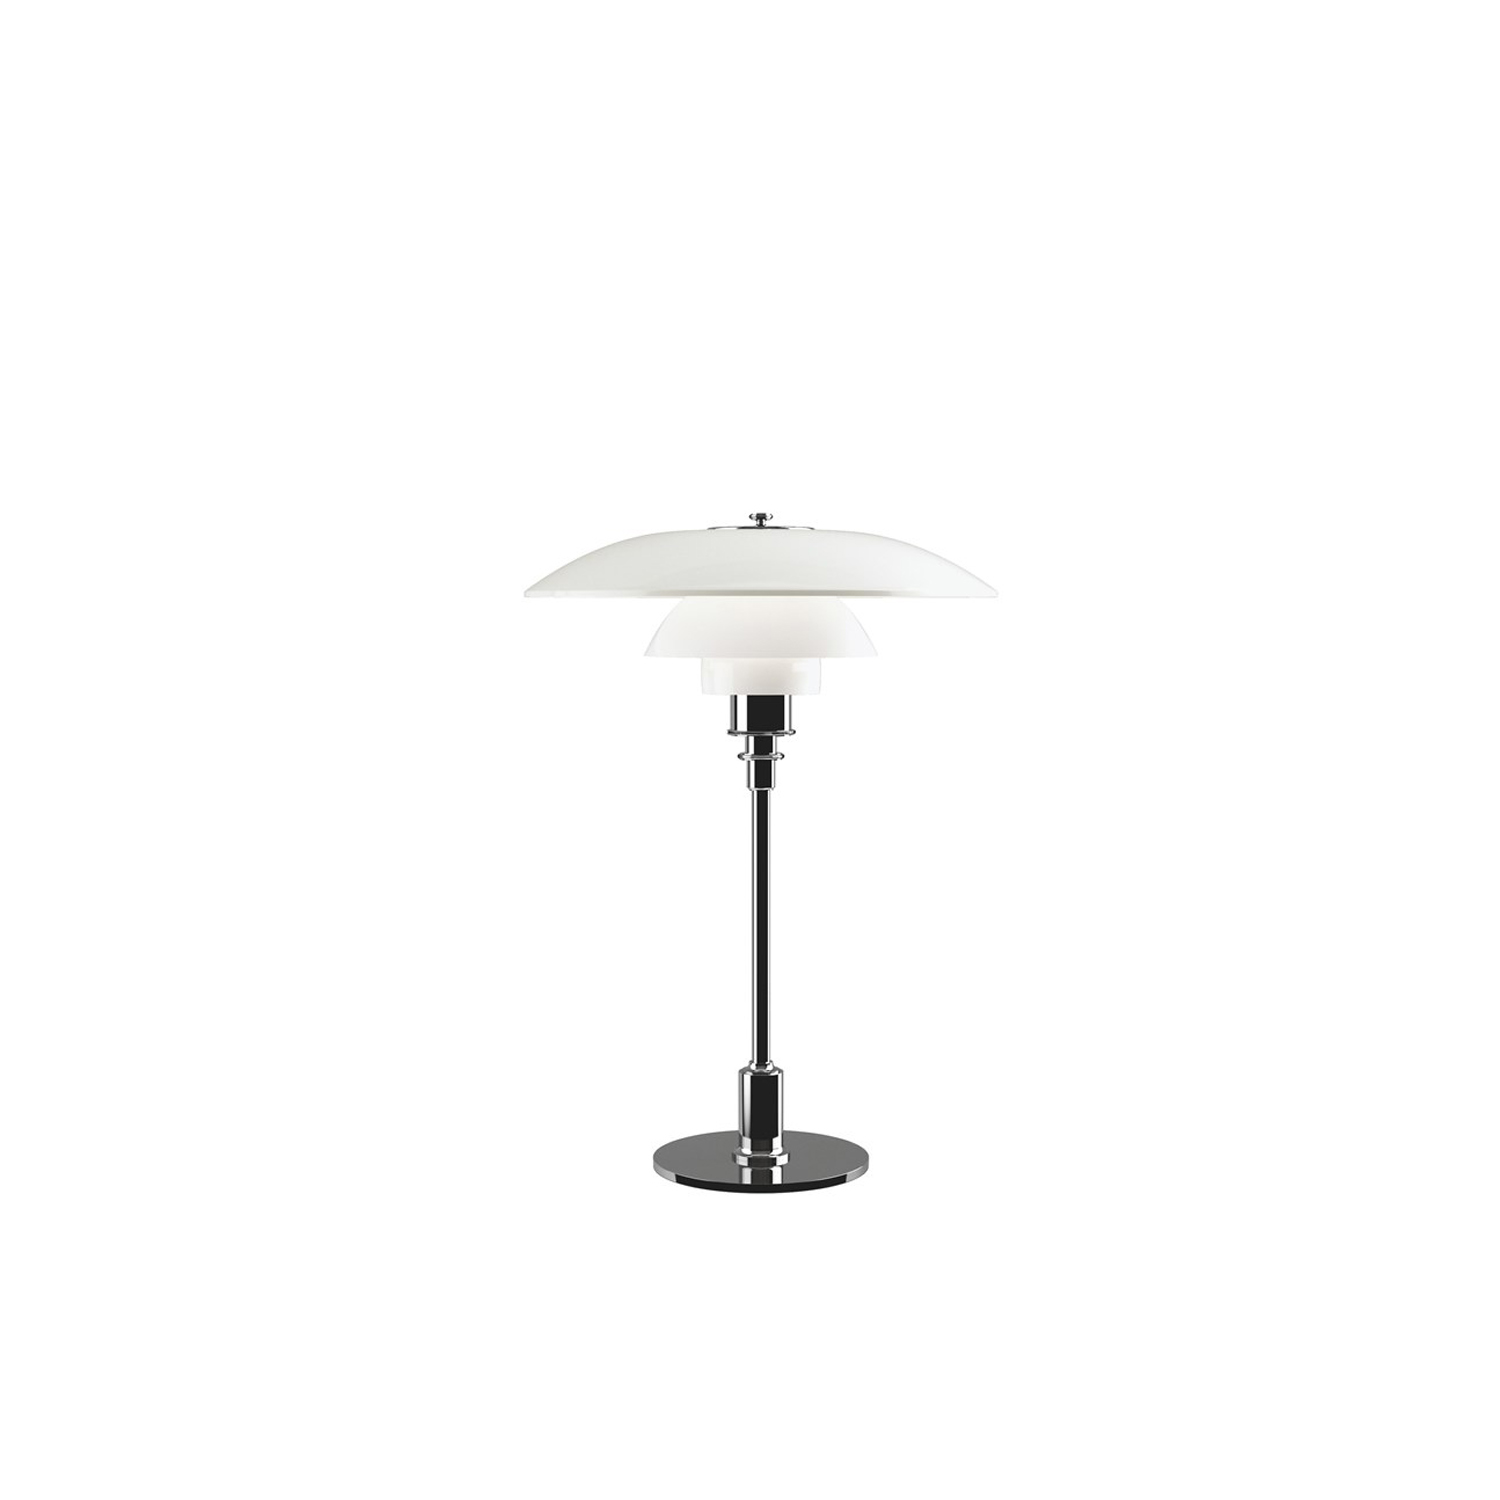 PH 3½-2½ Opal Glass Table Lamp - The fixture is designed based on the principle of a reflective three-shade system, which directs the majority of the light downwards.‎ The shades are made of mouth-blown opal three-layer glass, which is glossy on top and sandblasted matt on the underside, giving a soft and diffuse light distribution.‎ | Matter of Stuff